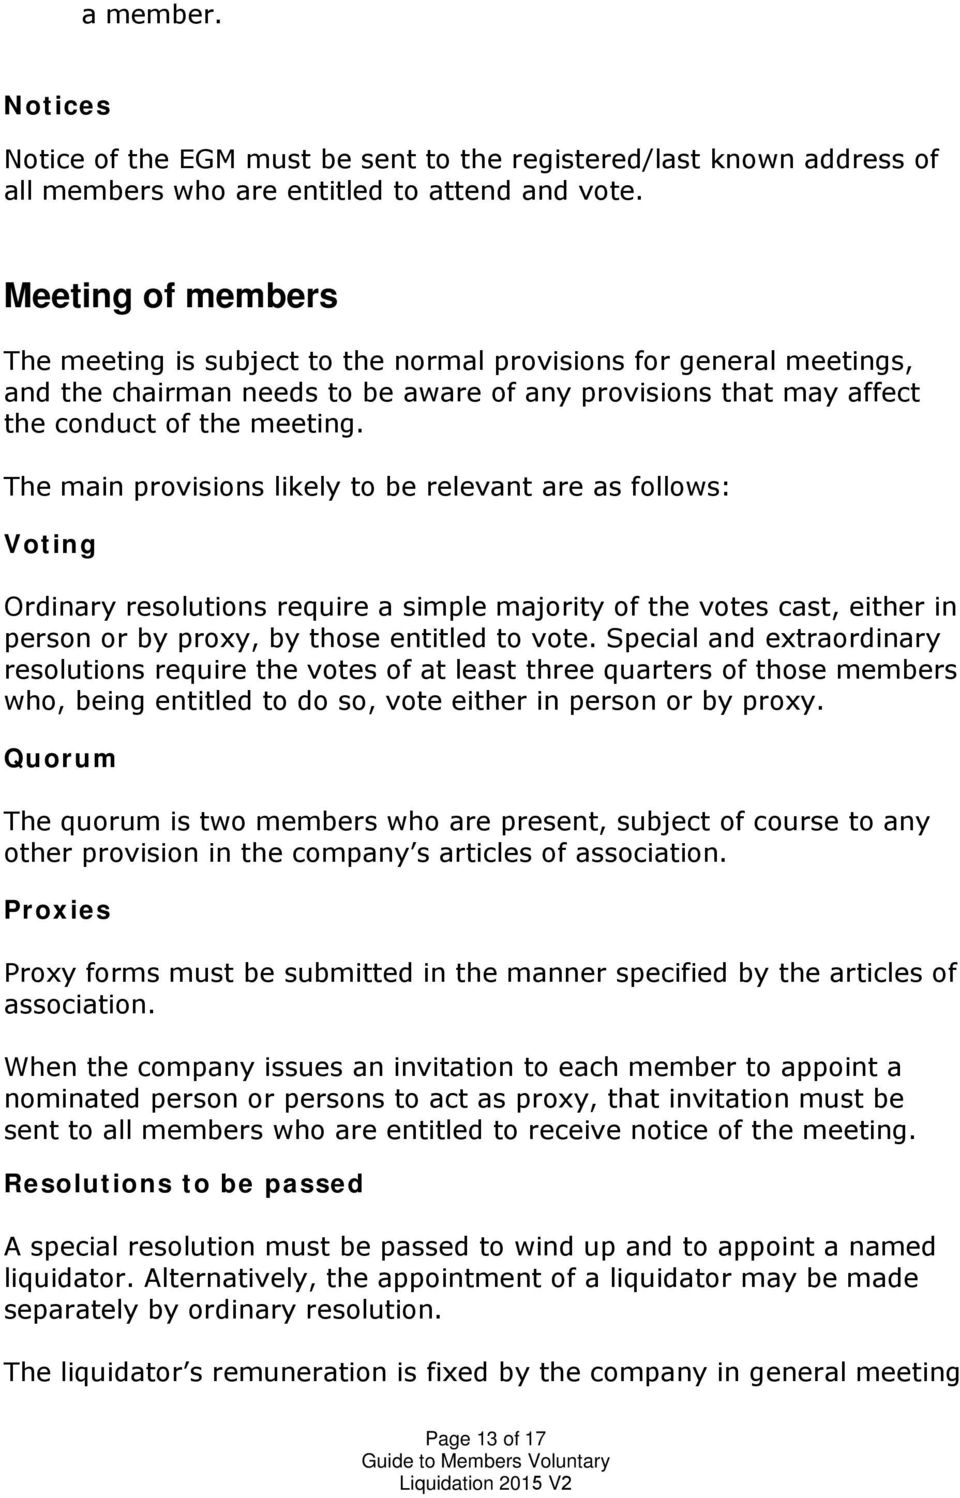 The main provisions likely to be relevant are as follows: Voting Ordinary resolutions require a simple majority of the votes cast, either in person or by proxy, by those entitled to vote.